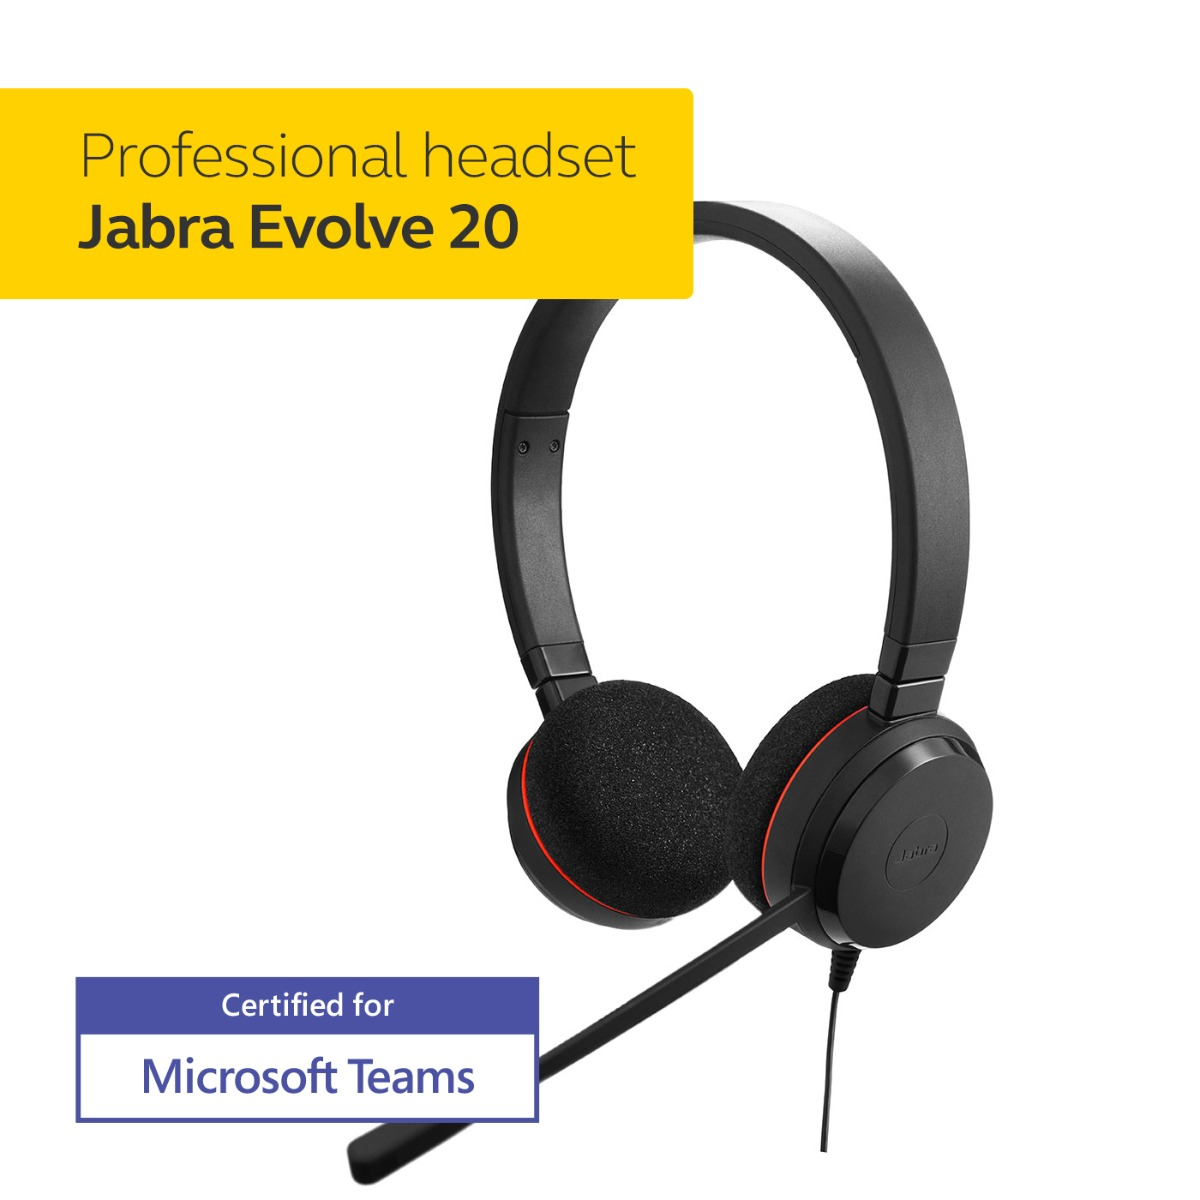 Jabra Evolve 20 MS Stereo Headset – Microsoft Certified Headphones for VoIP Softphone with Passive Noise Cancellation – USB-Cable with Controller – Black